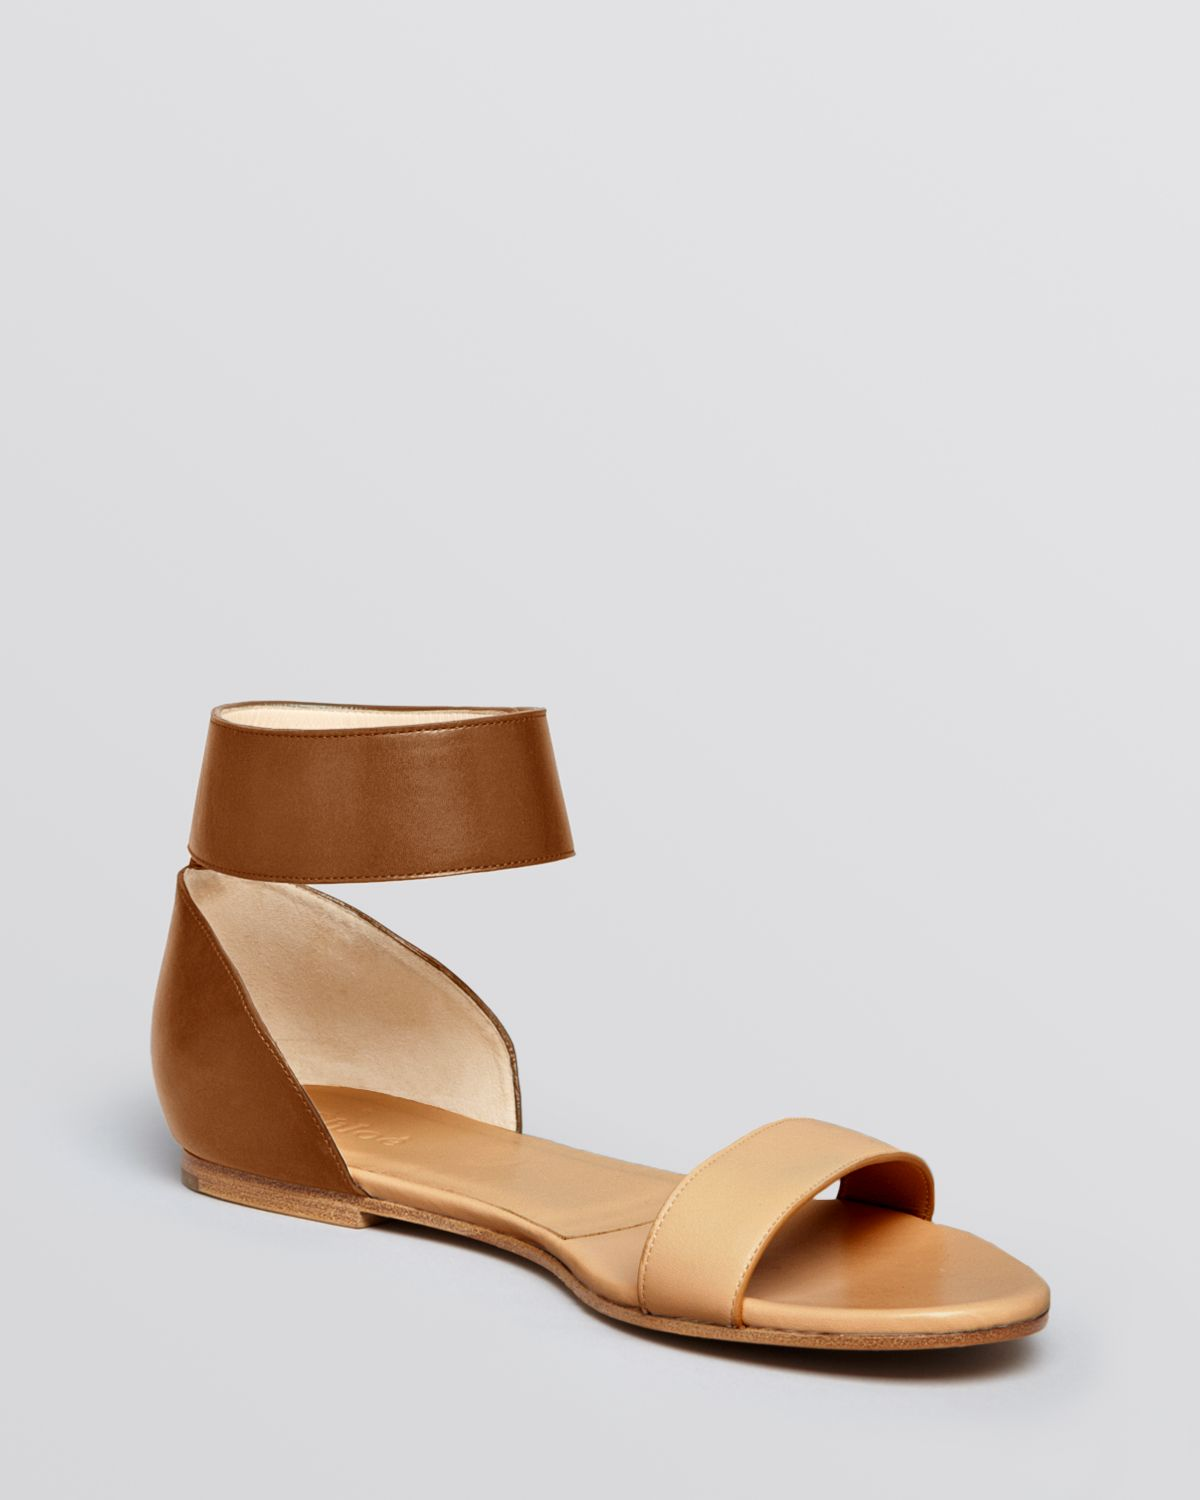 Chlo 233 Flat Sandals Taffy Ankle Strap In Brown Lyst